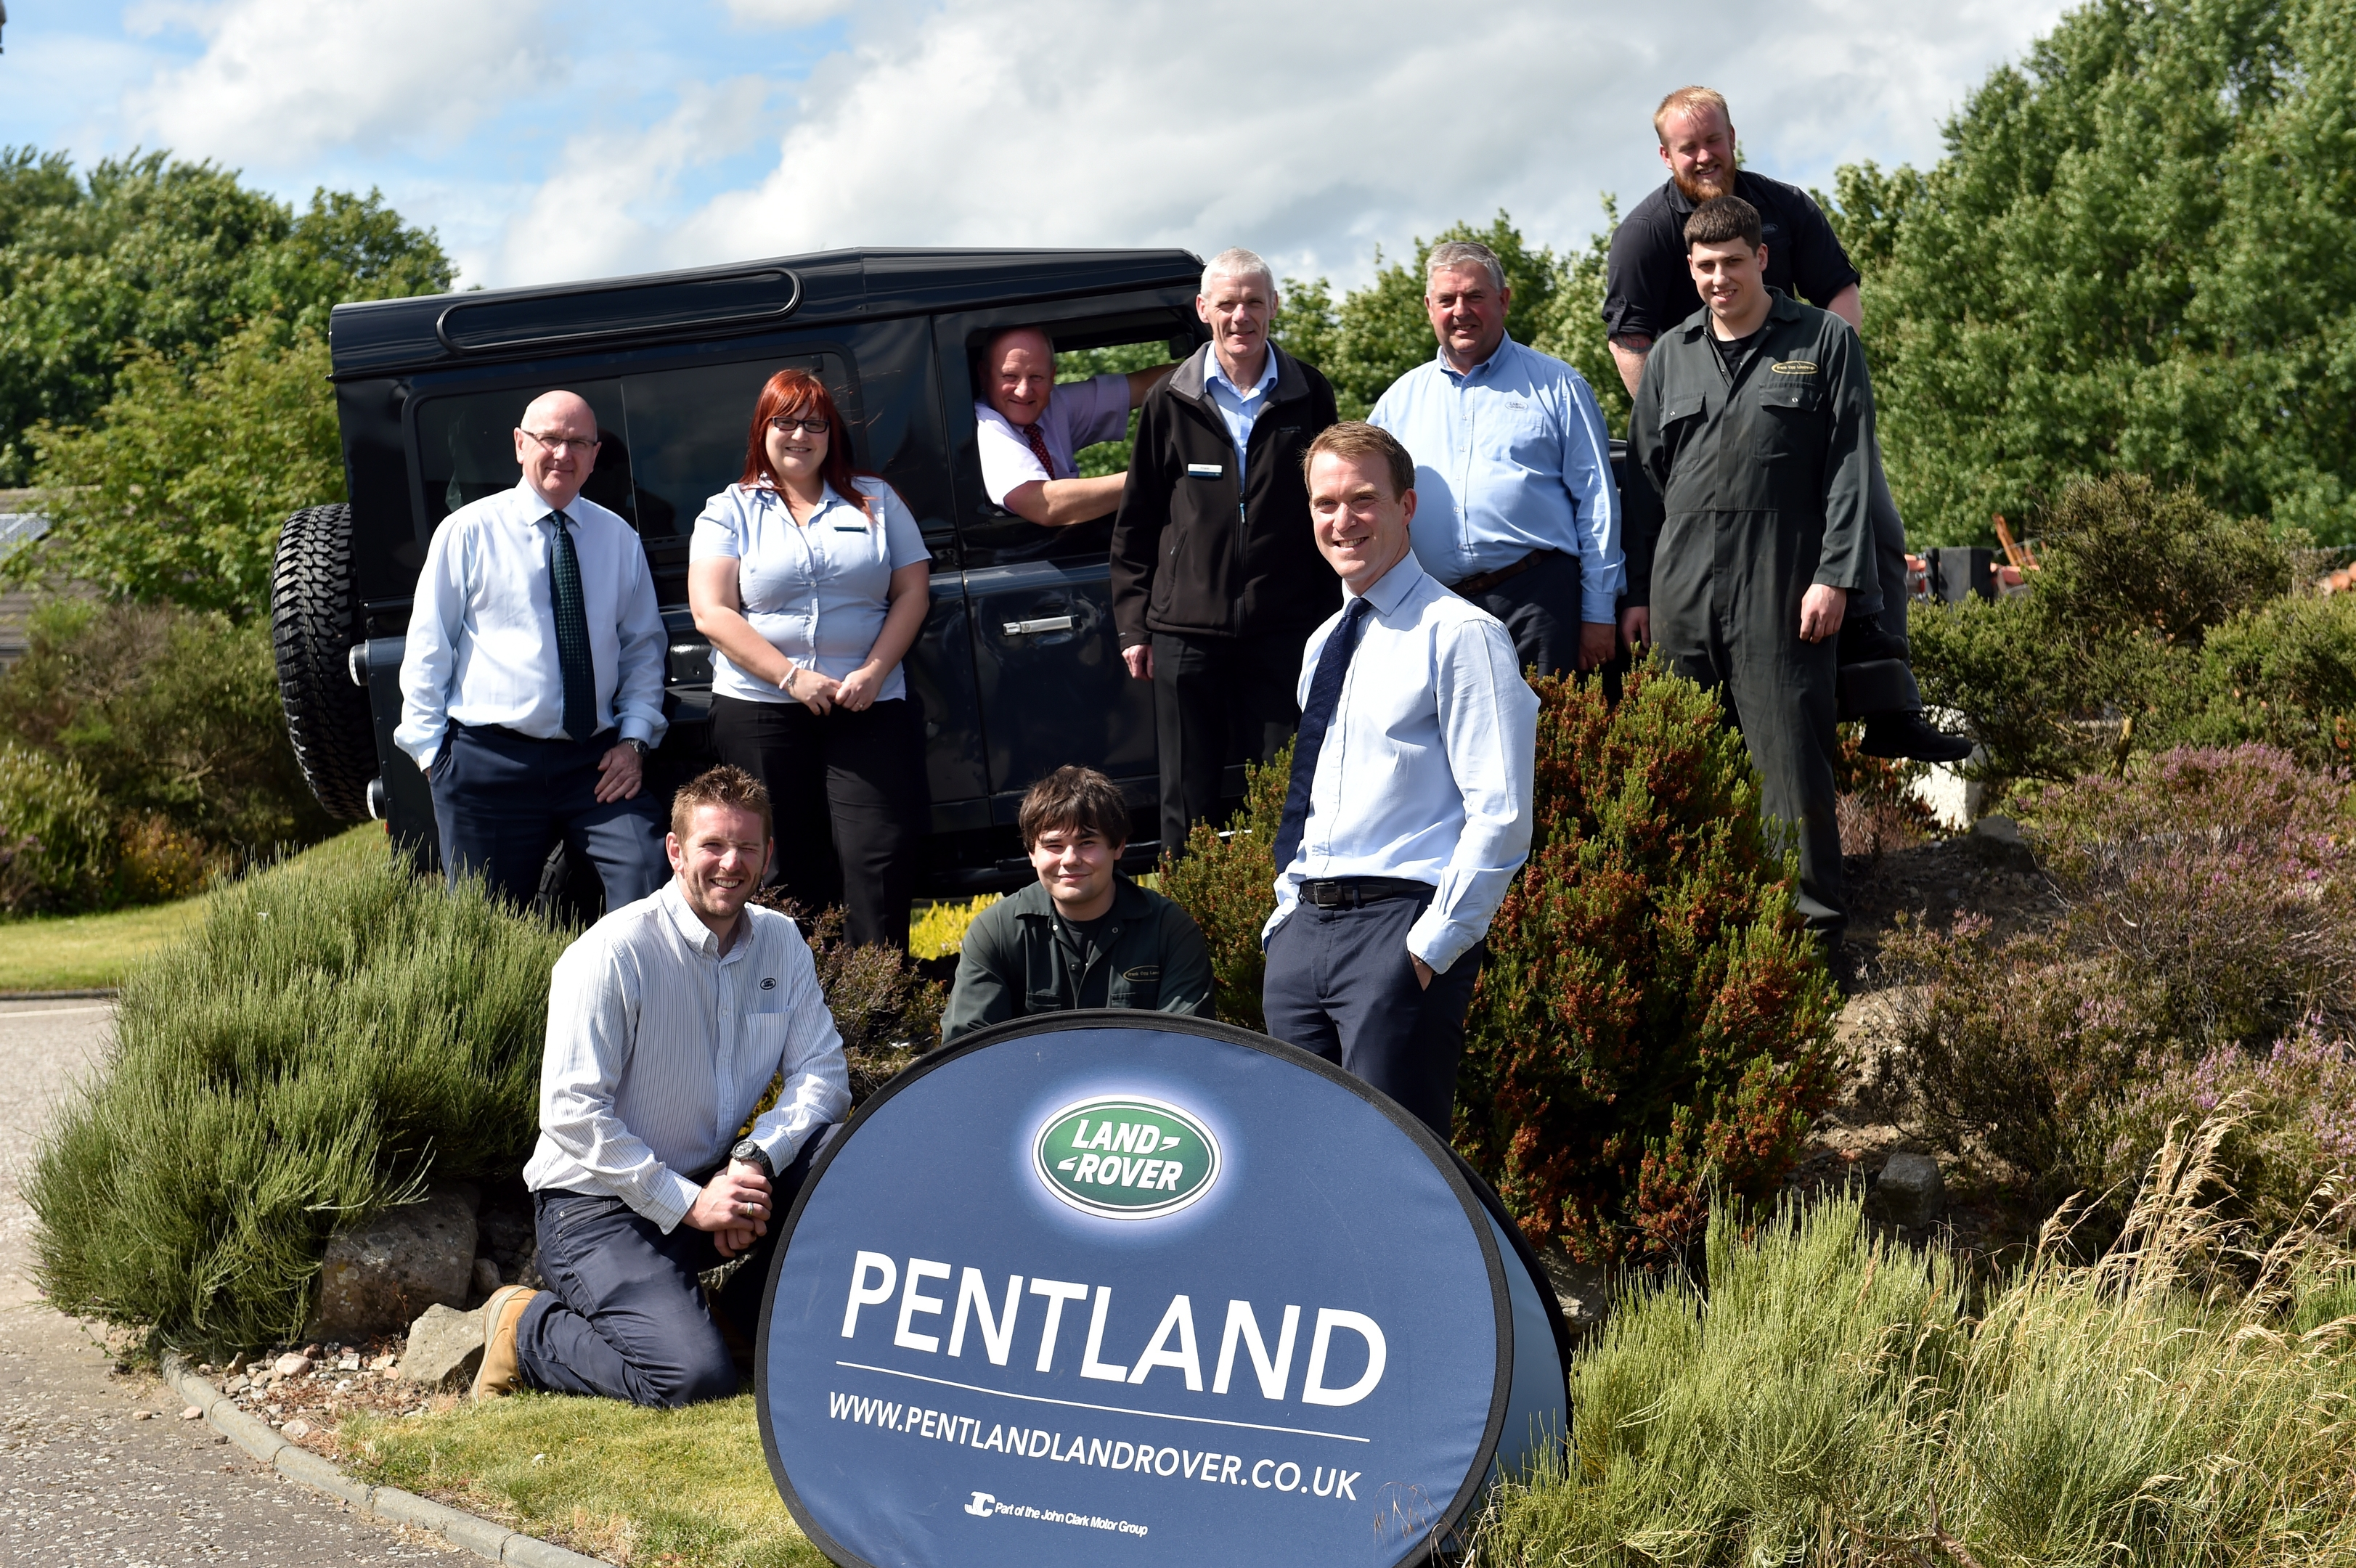 Chris Clark, Business Development Director, John Clark Motor Group, at their latest aquisition, Pentland Land Rover (Elgin), with some of the staff.